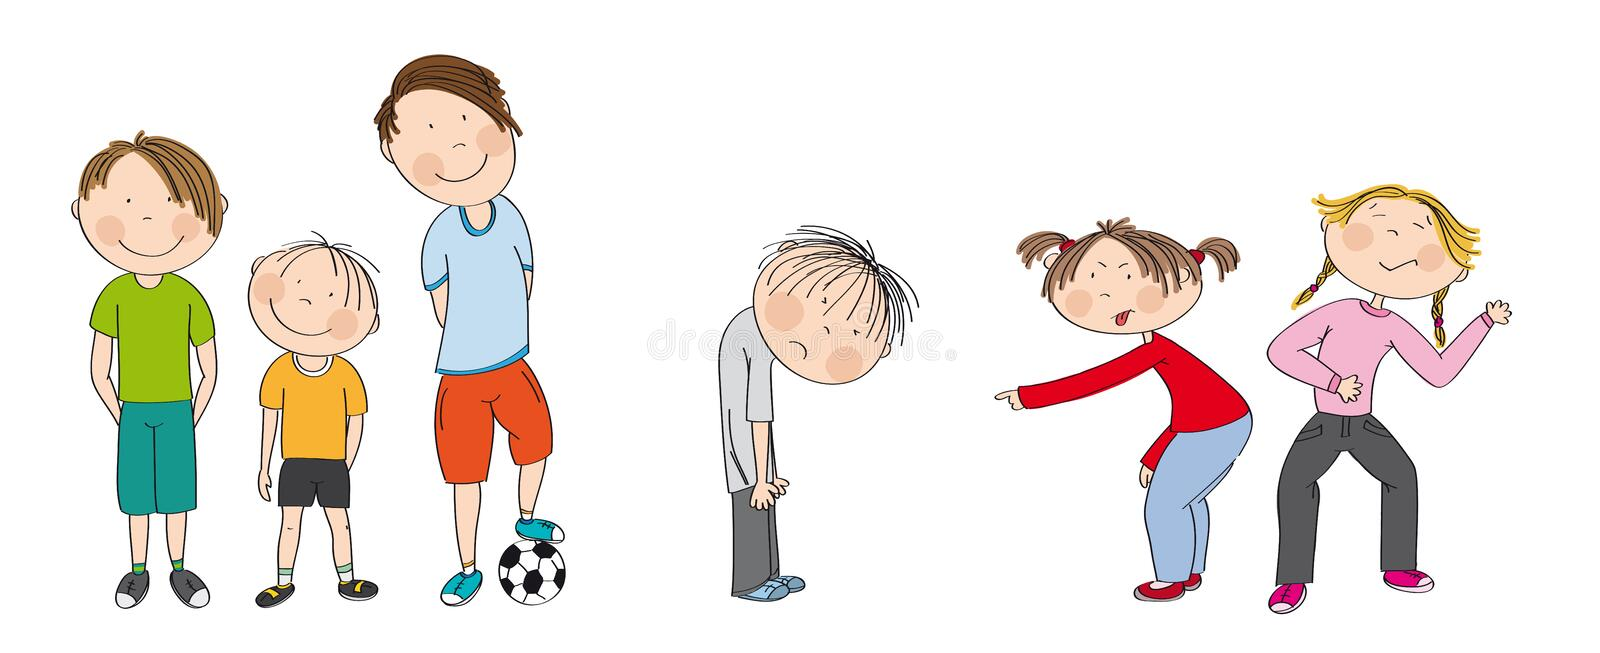 Three boys with ball ready to play football / soccer, two girls bullying sad boy, sneering, offending him. He wants to have friends. Original hand drawn royalty free illustration